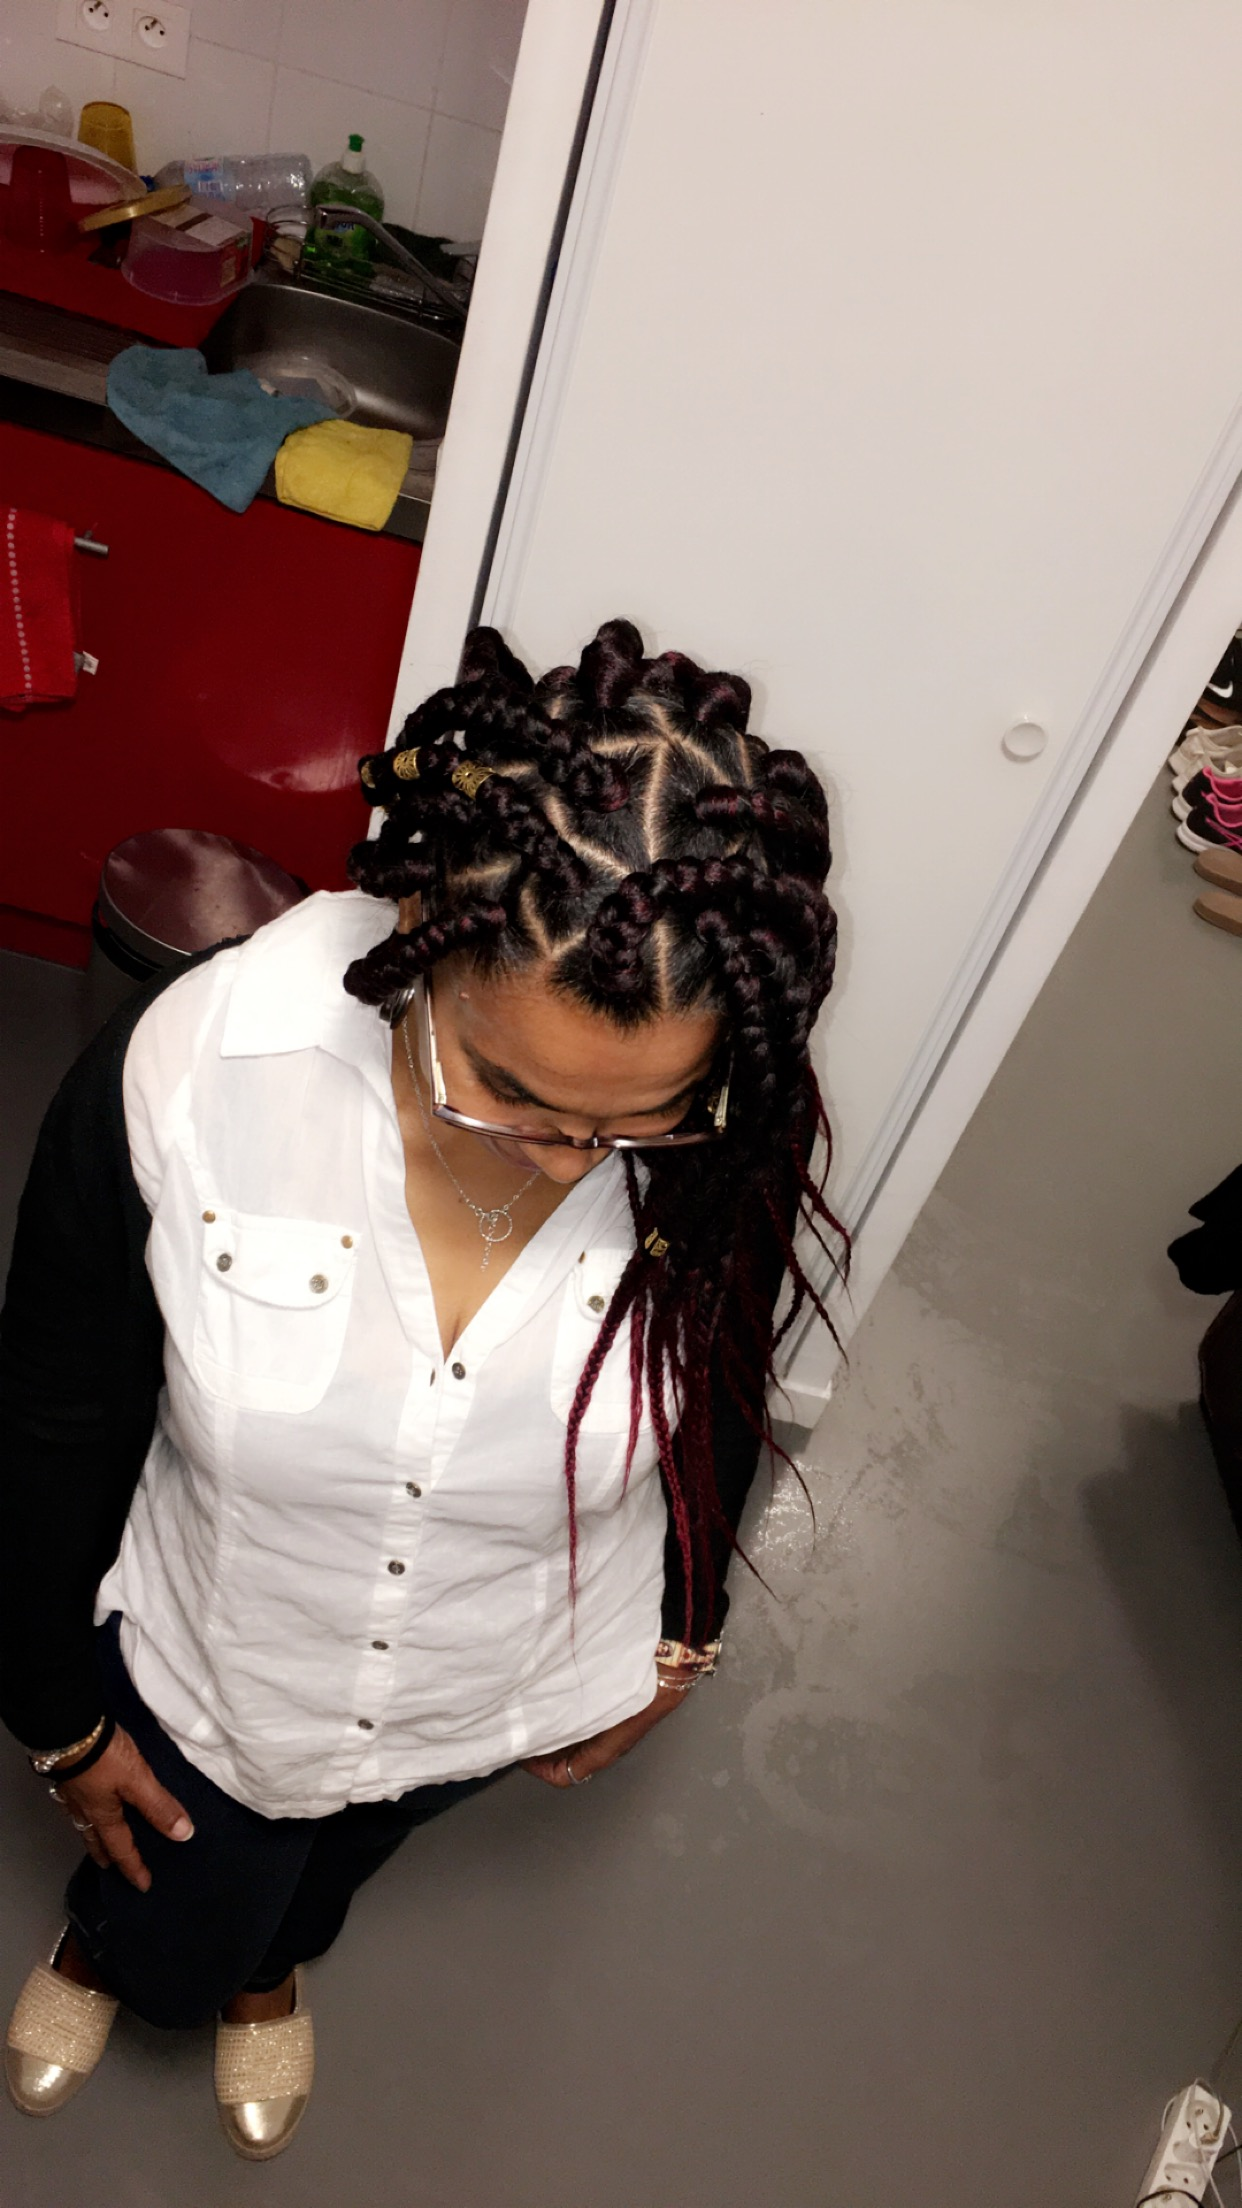 salon de coiffure afro tresse tresses box braids crochet braids vanilles tissages paris 75 77 78 91 92 93 94 95 OFXPMRKP